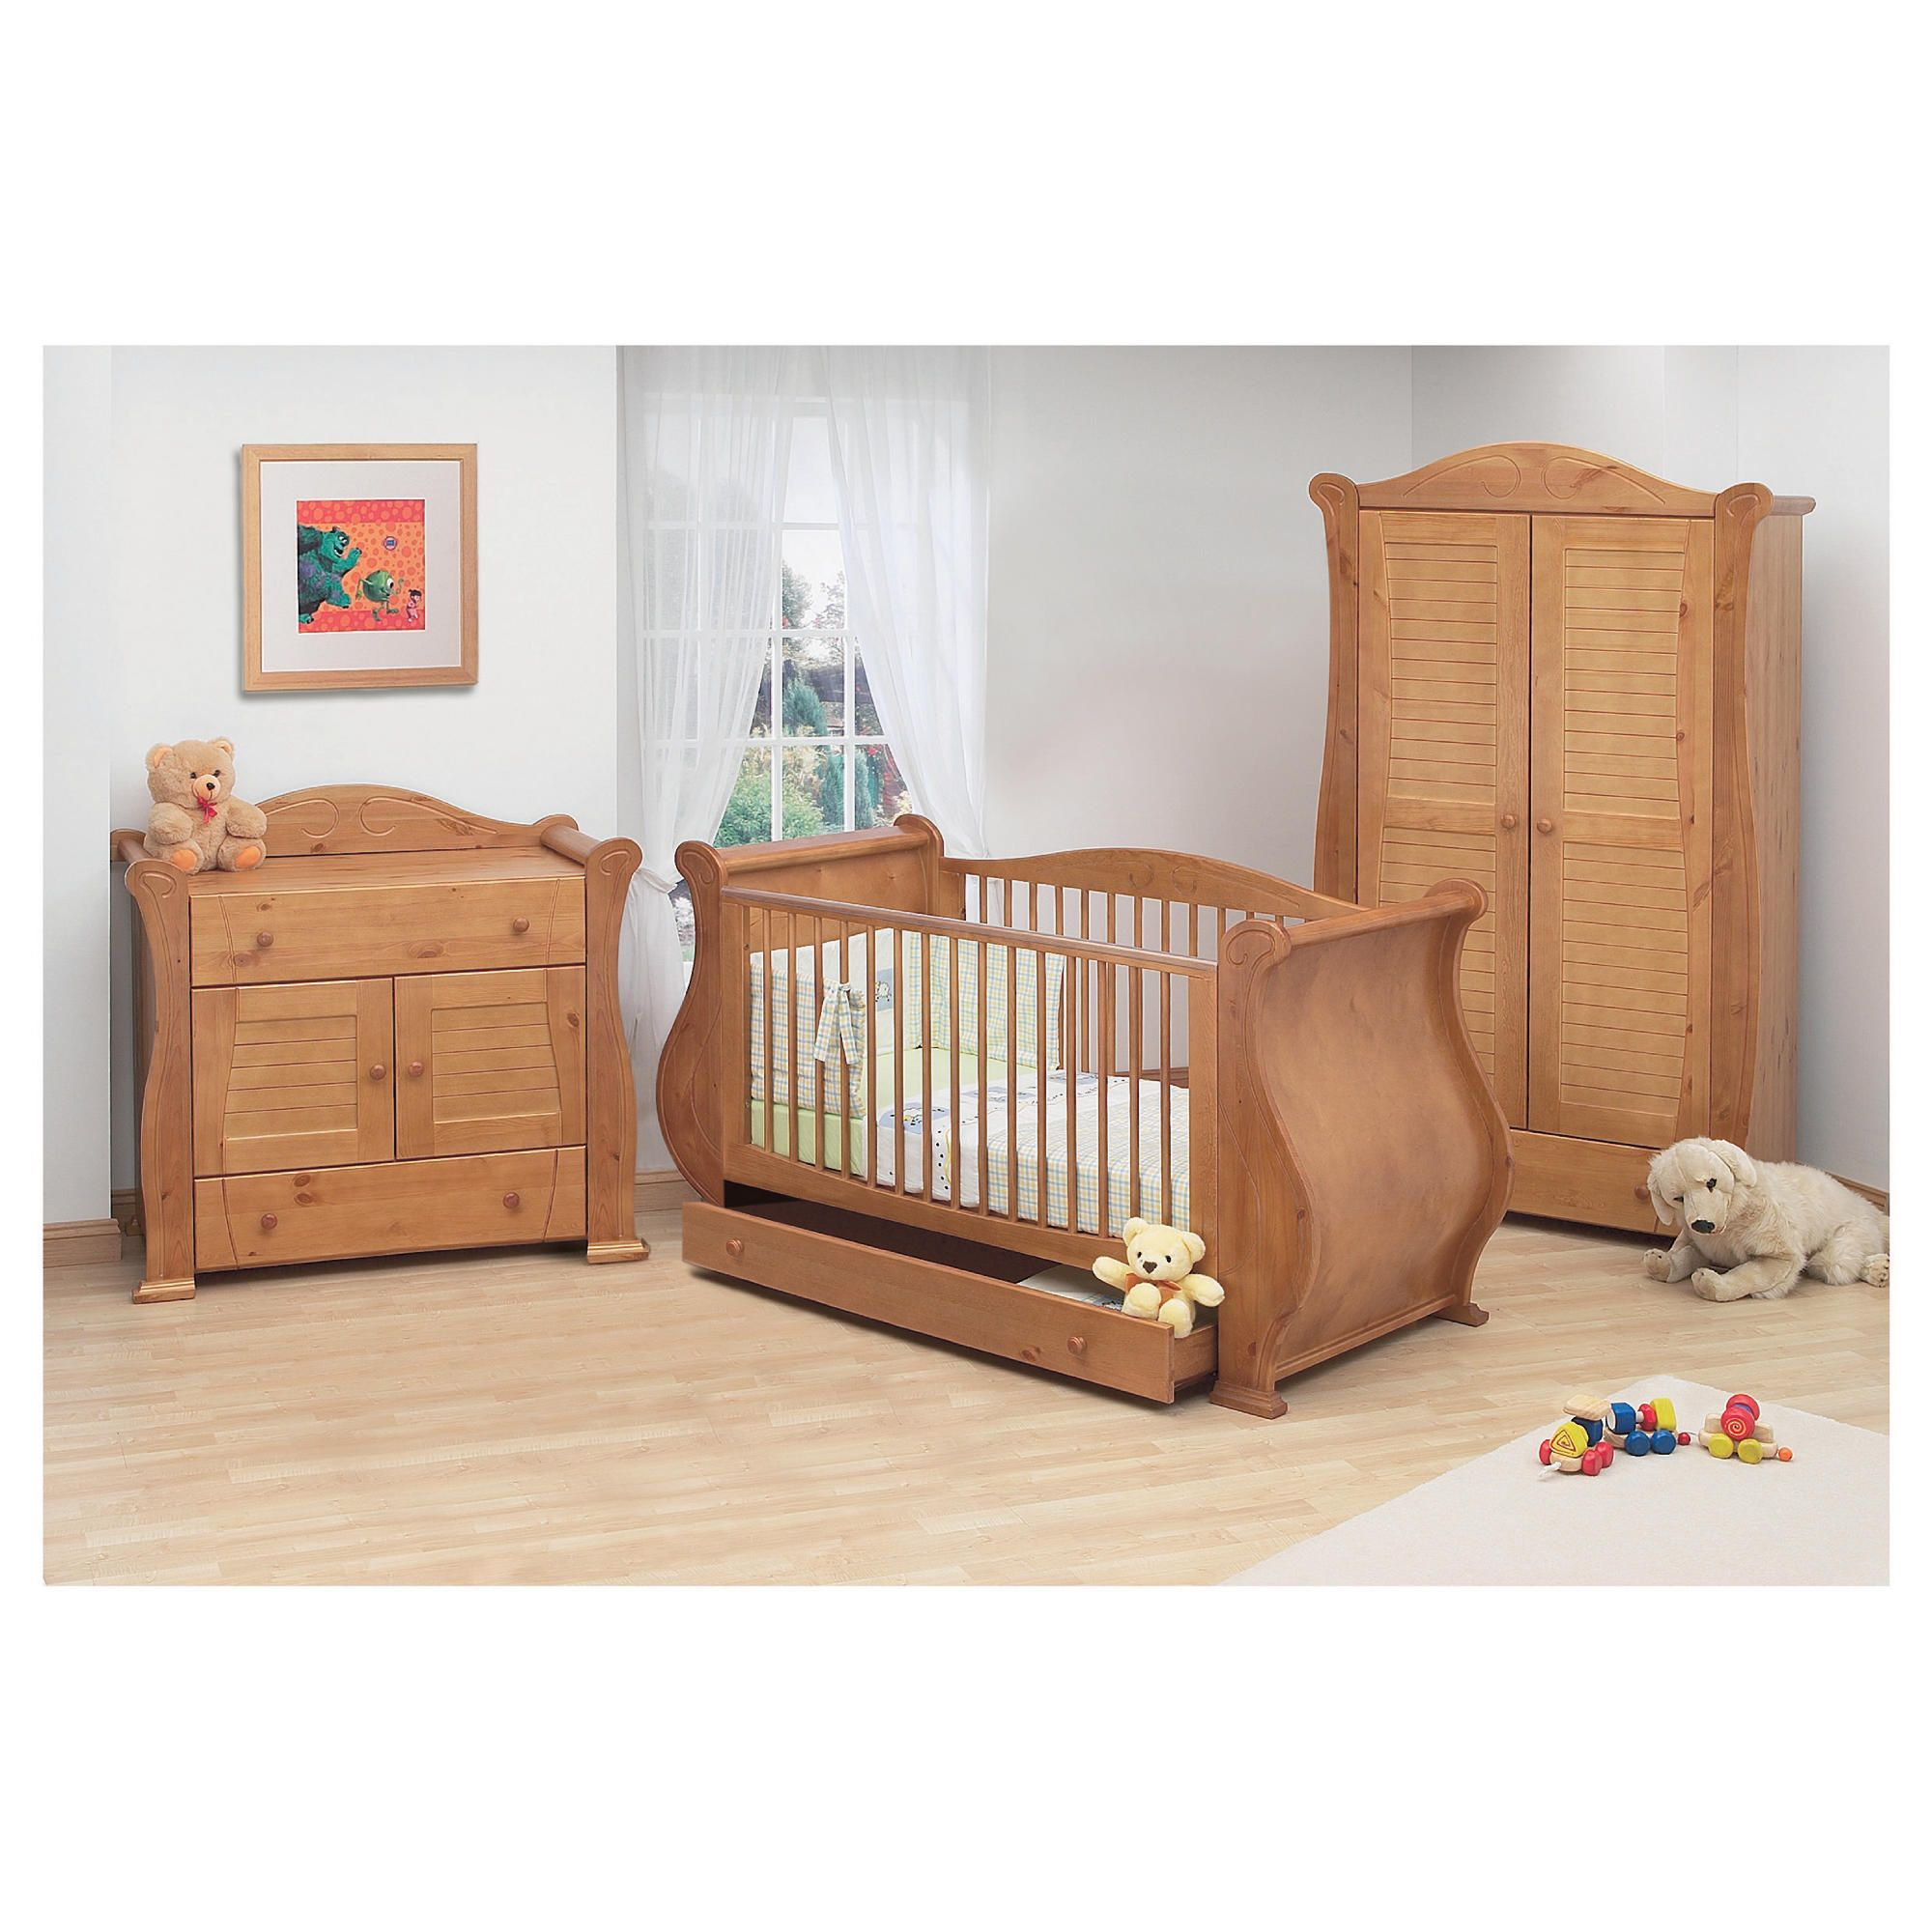 Tutti Bambini Marie 3 Piece Sleigh Room Set, Natural. at Tesco Direct